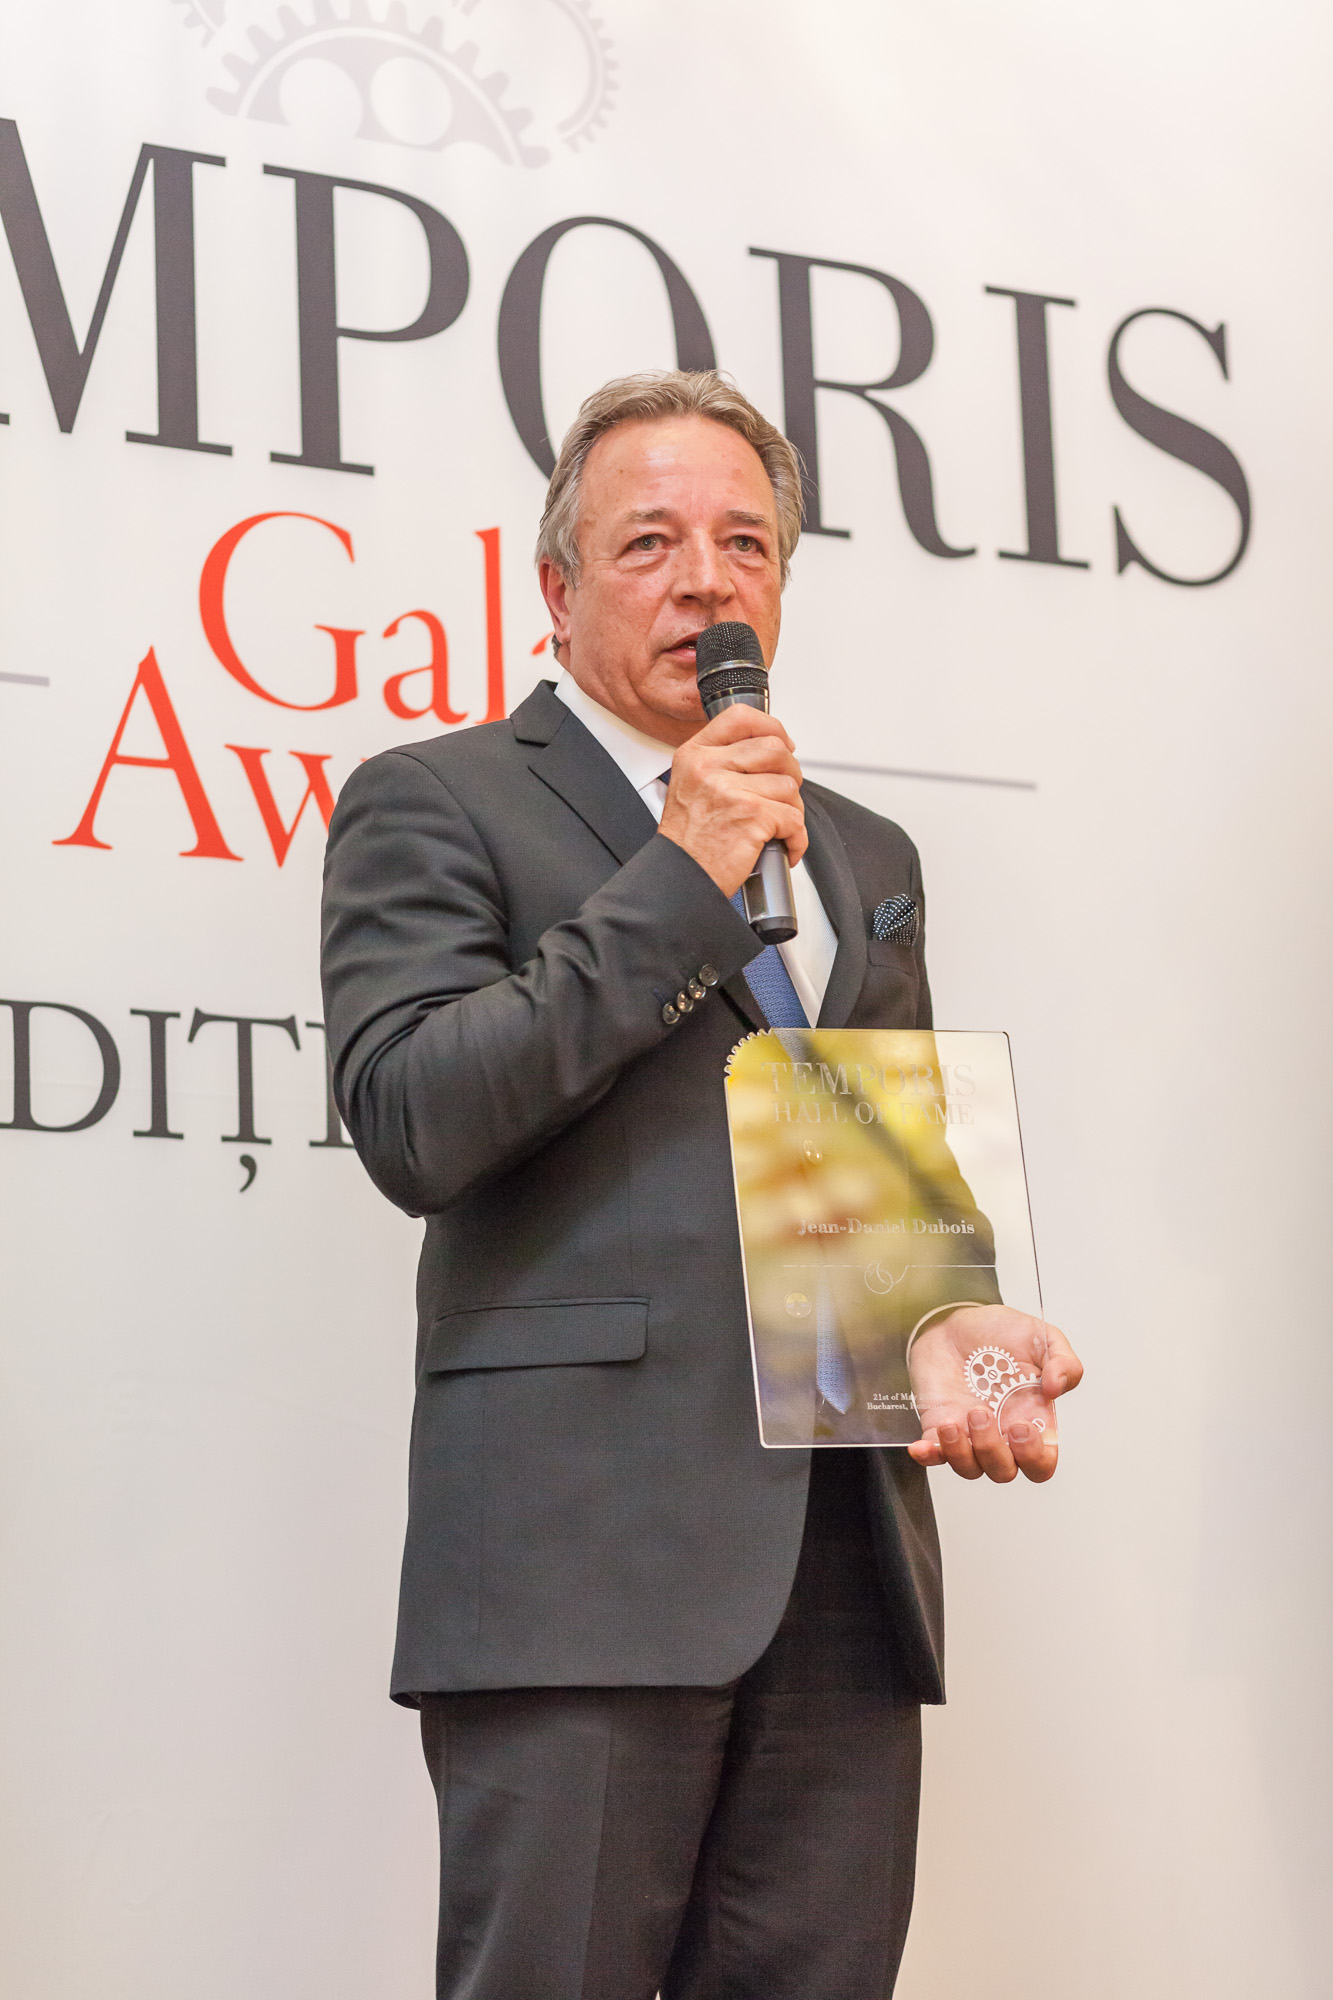 TEMPORIS Awards Gala 2015 (13)